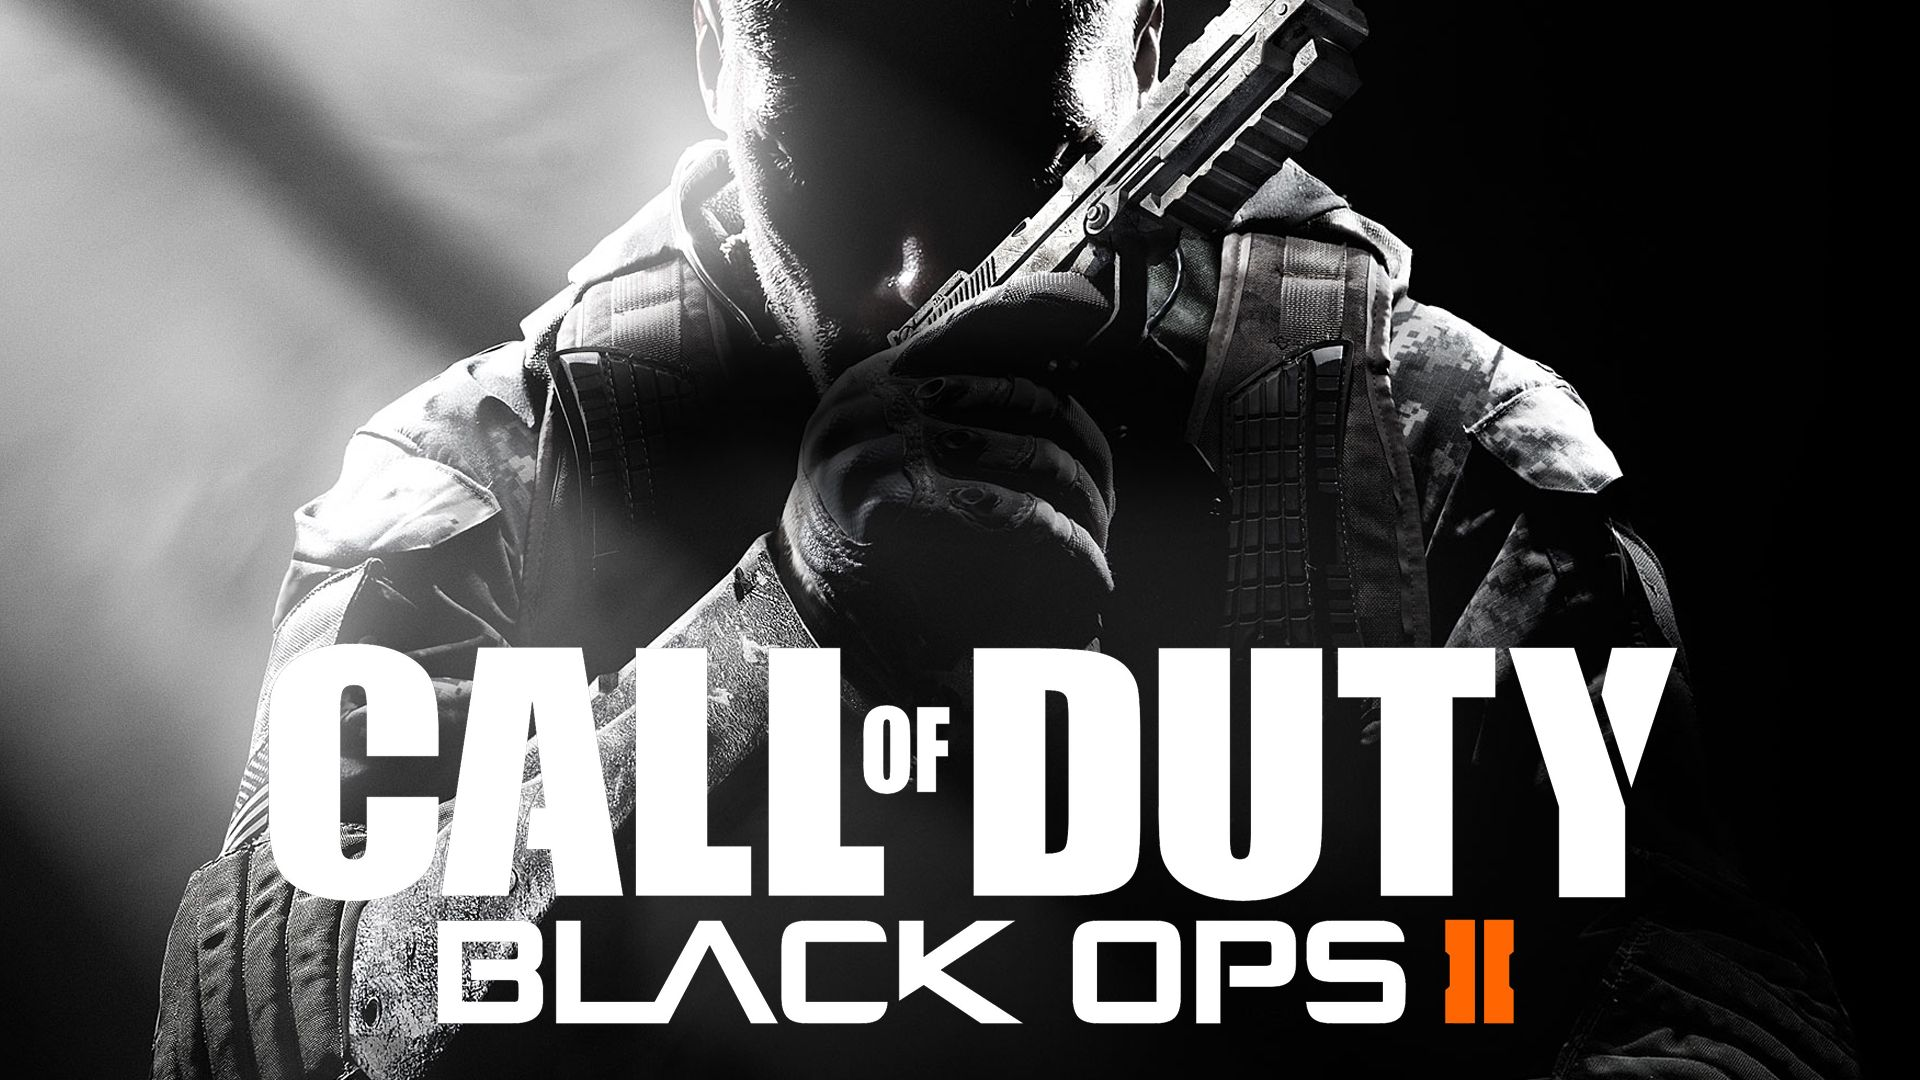 Call Of Duty Black Ops HD Desktop Wallpaper Widescreen High 1024x600 1 Wallpapers 31